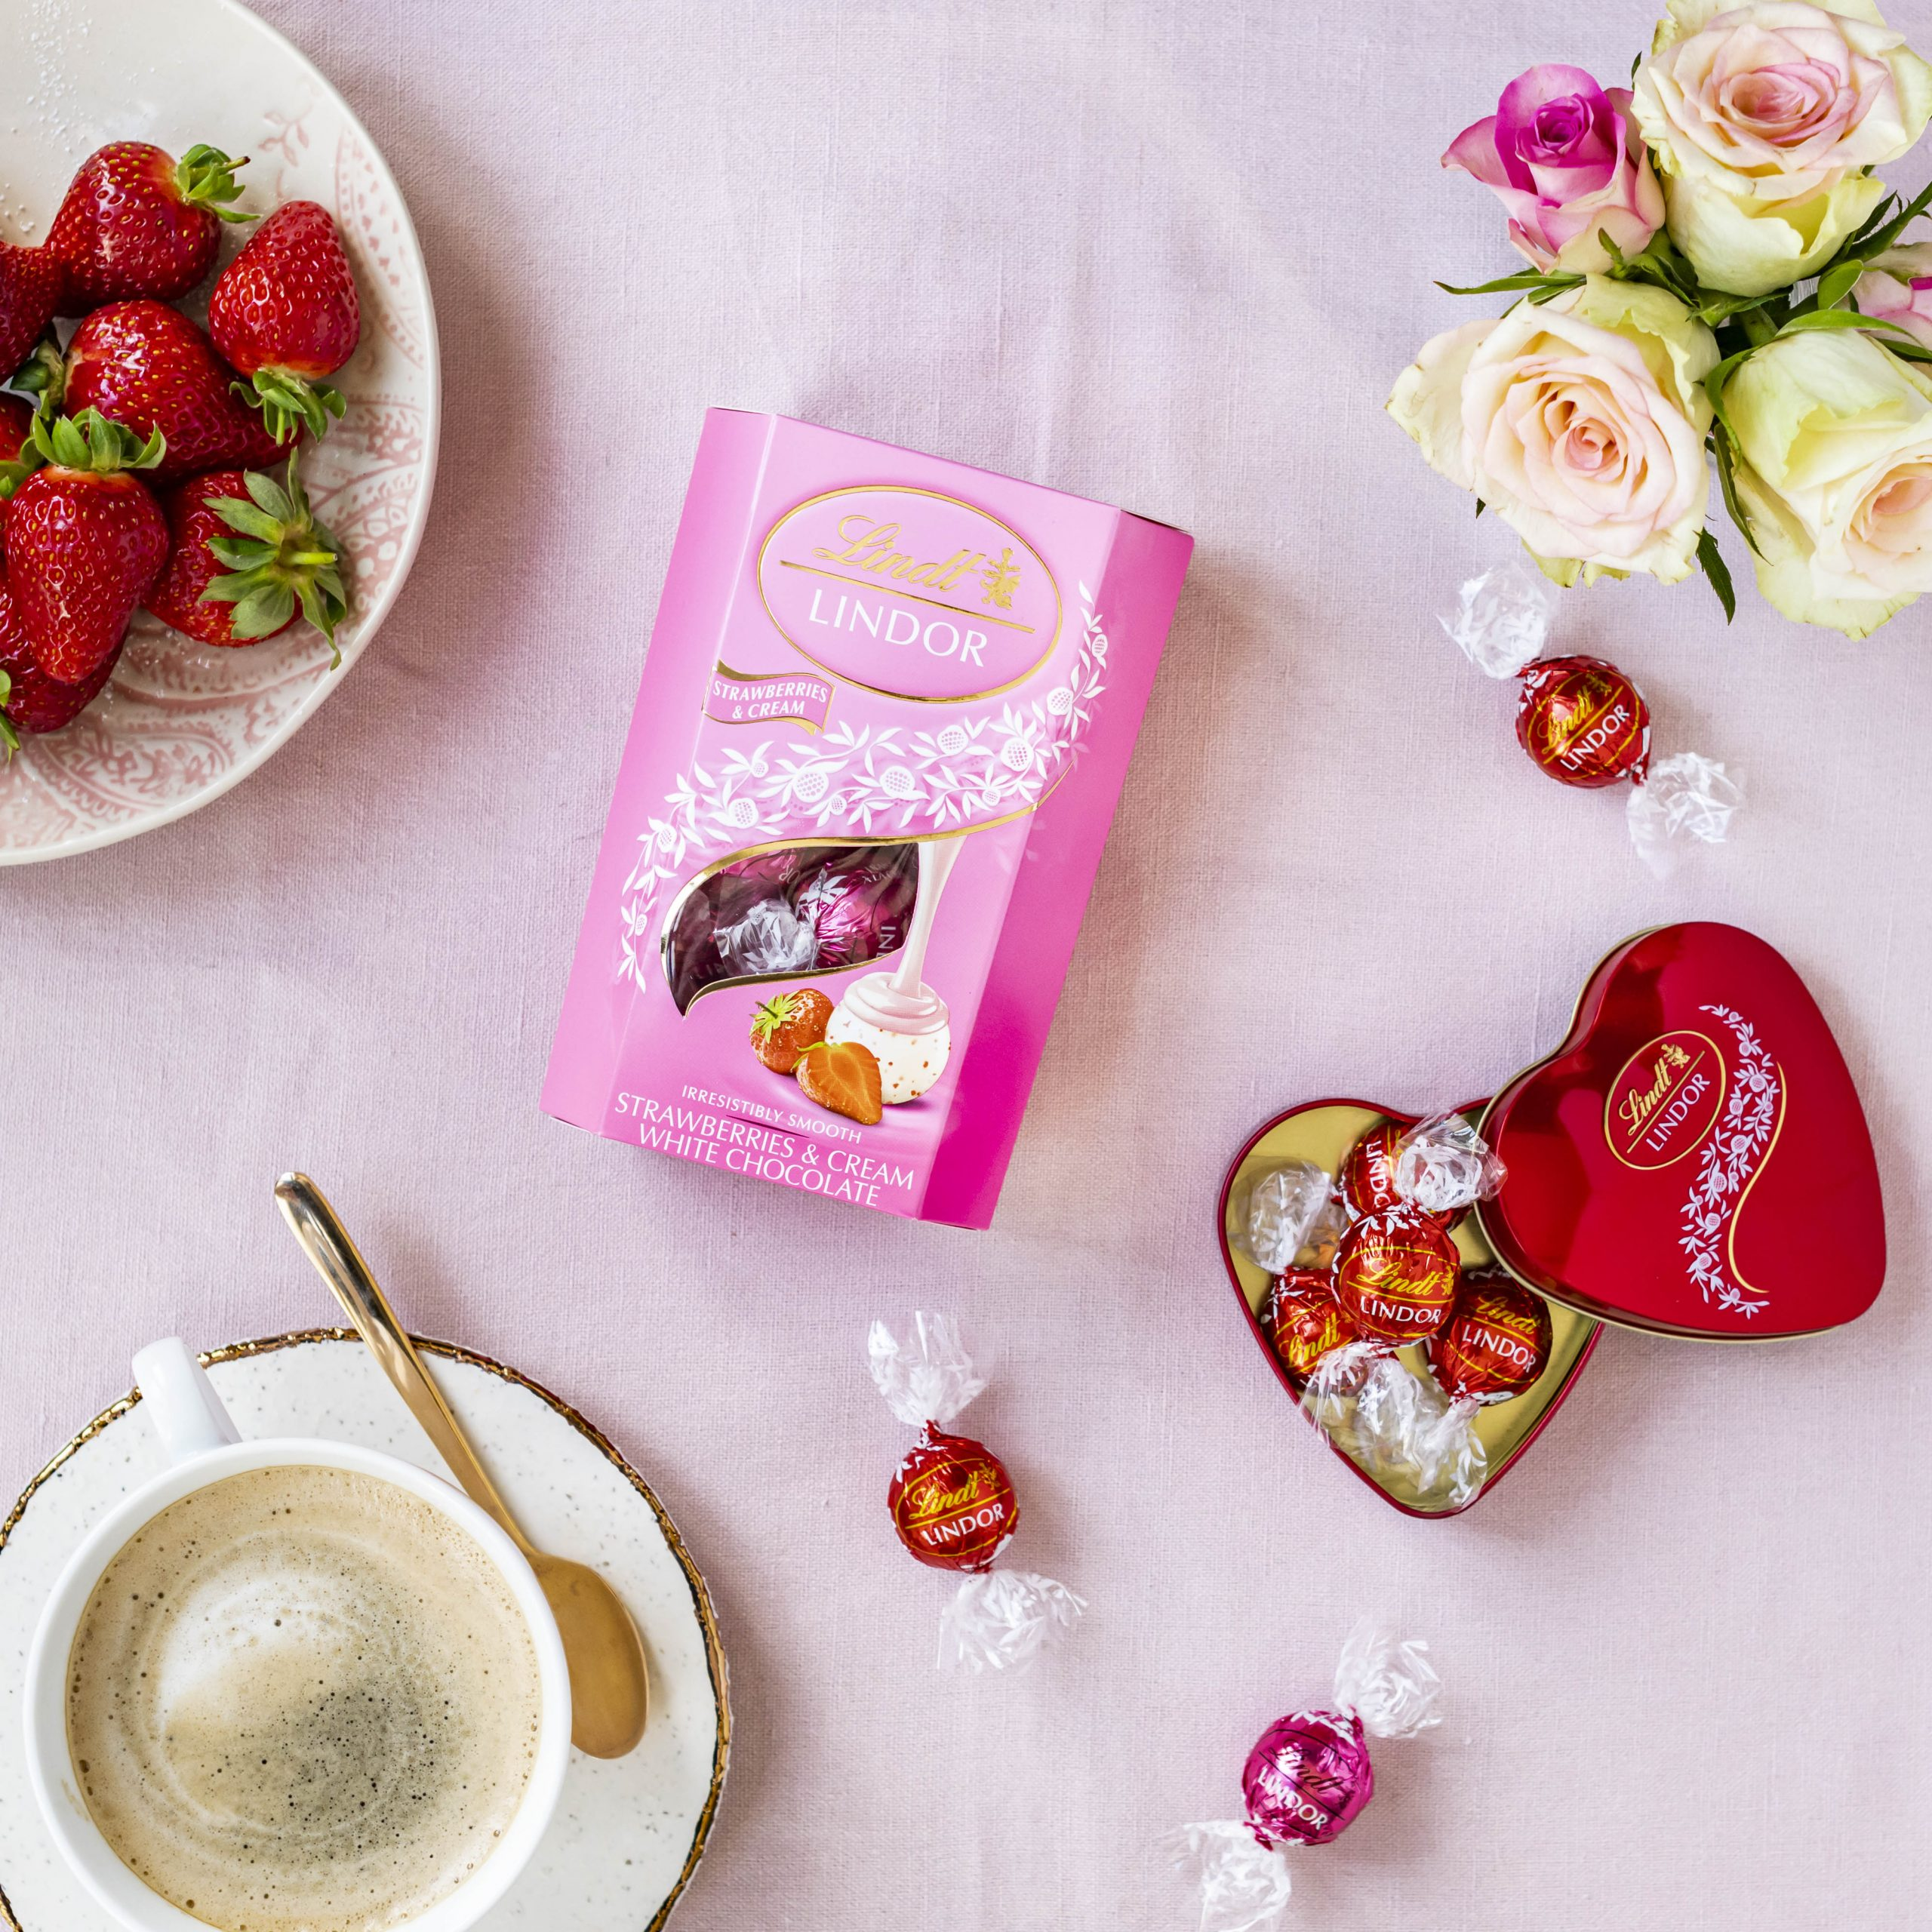 Win a luxurious chocolate hamper worth over R500 with Food24 and Lindt